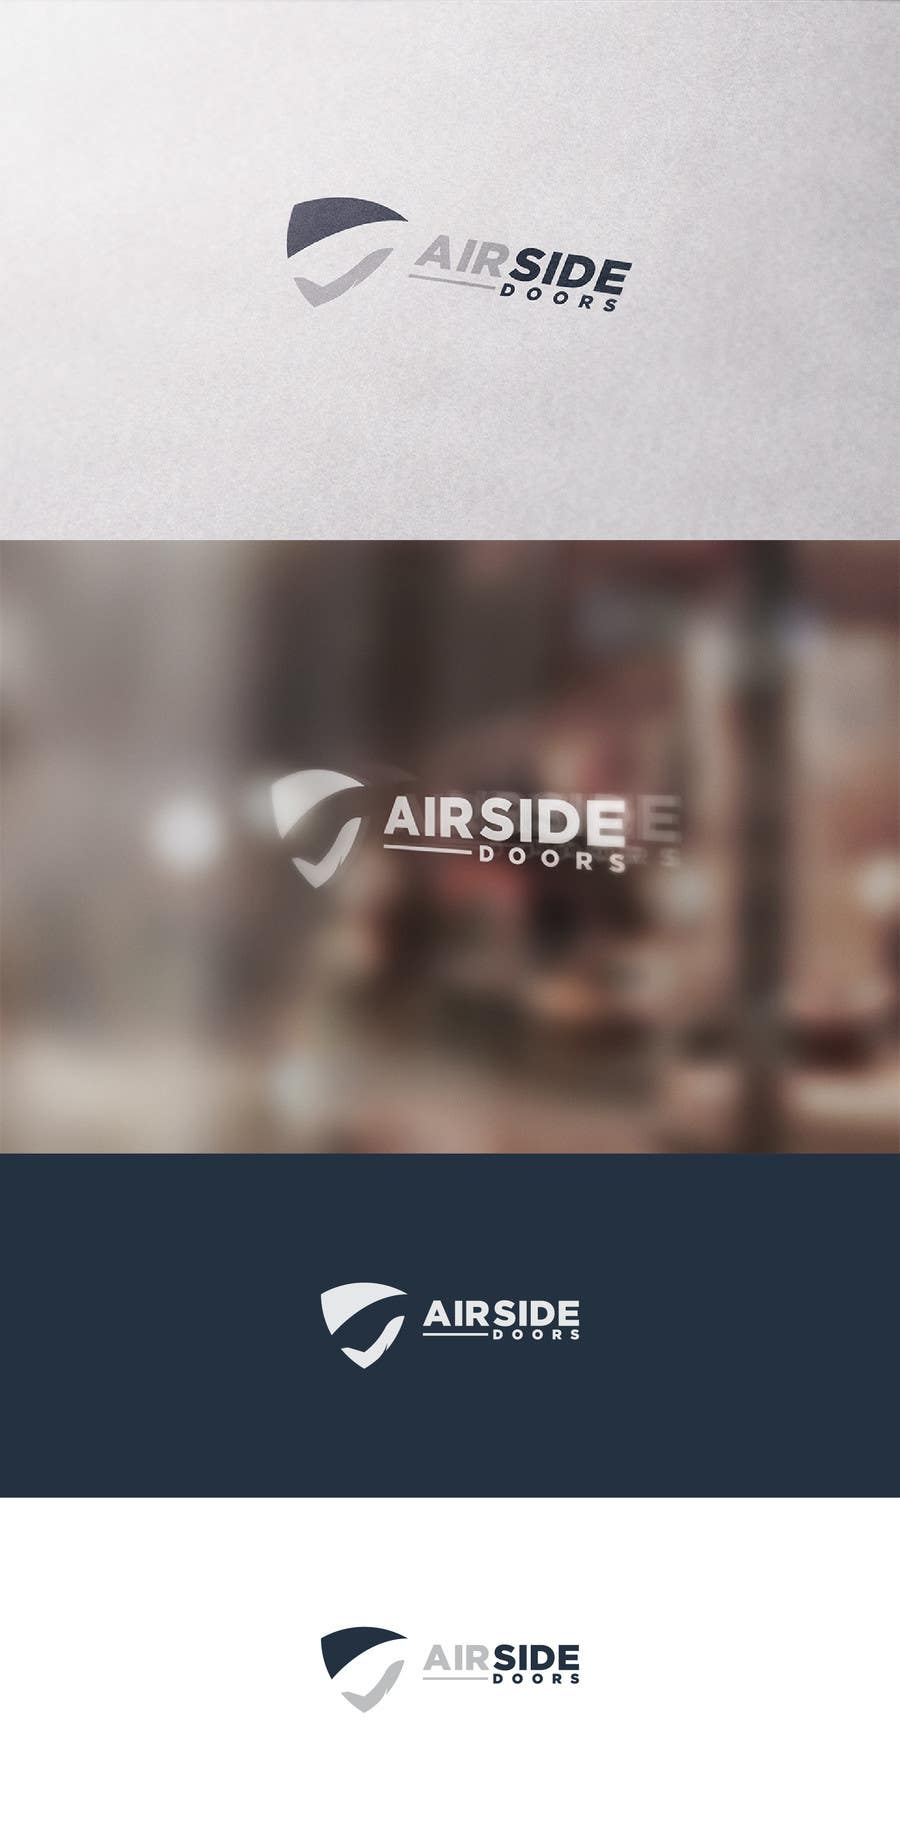 Contest Entry #498 for AirSide Doors- NEW LOGO CONTEST